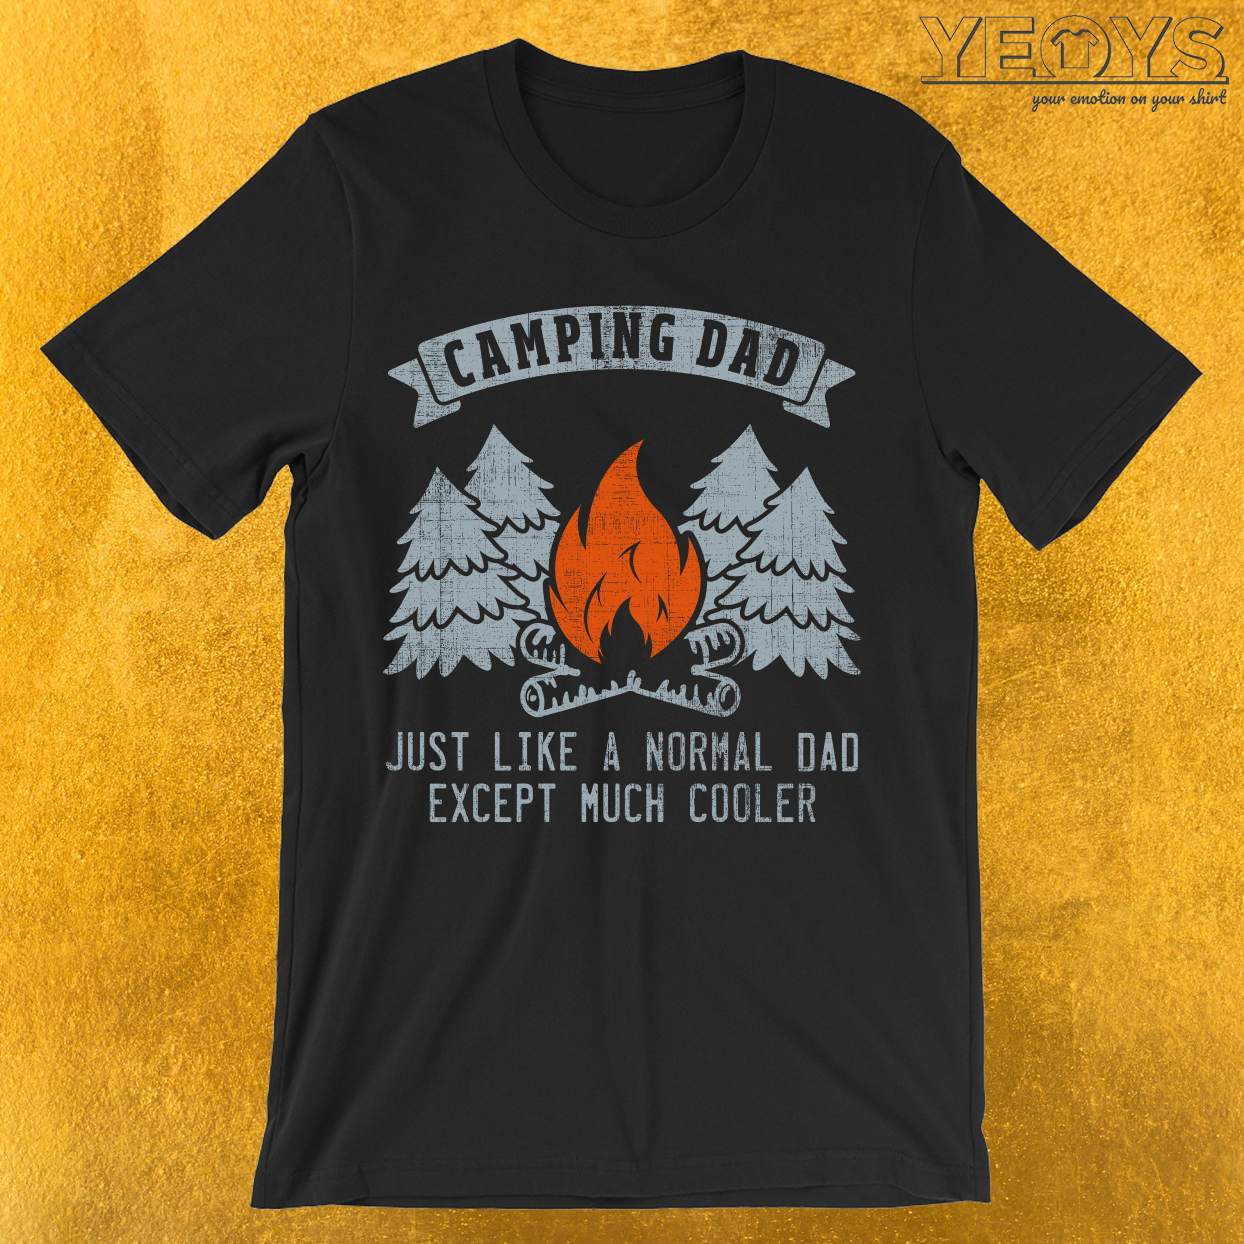 Camping Dad Just Like A Normal Dad T-Shirt